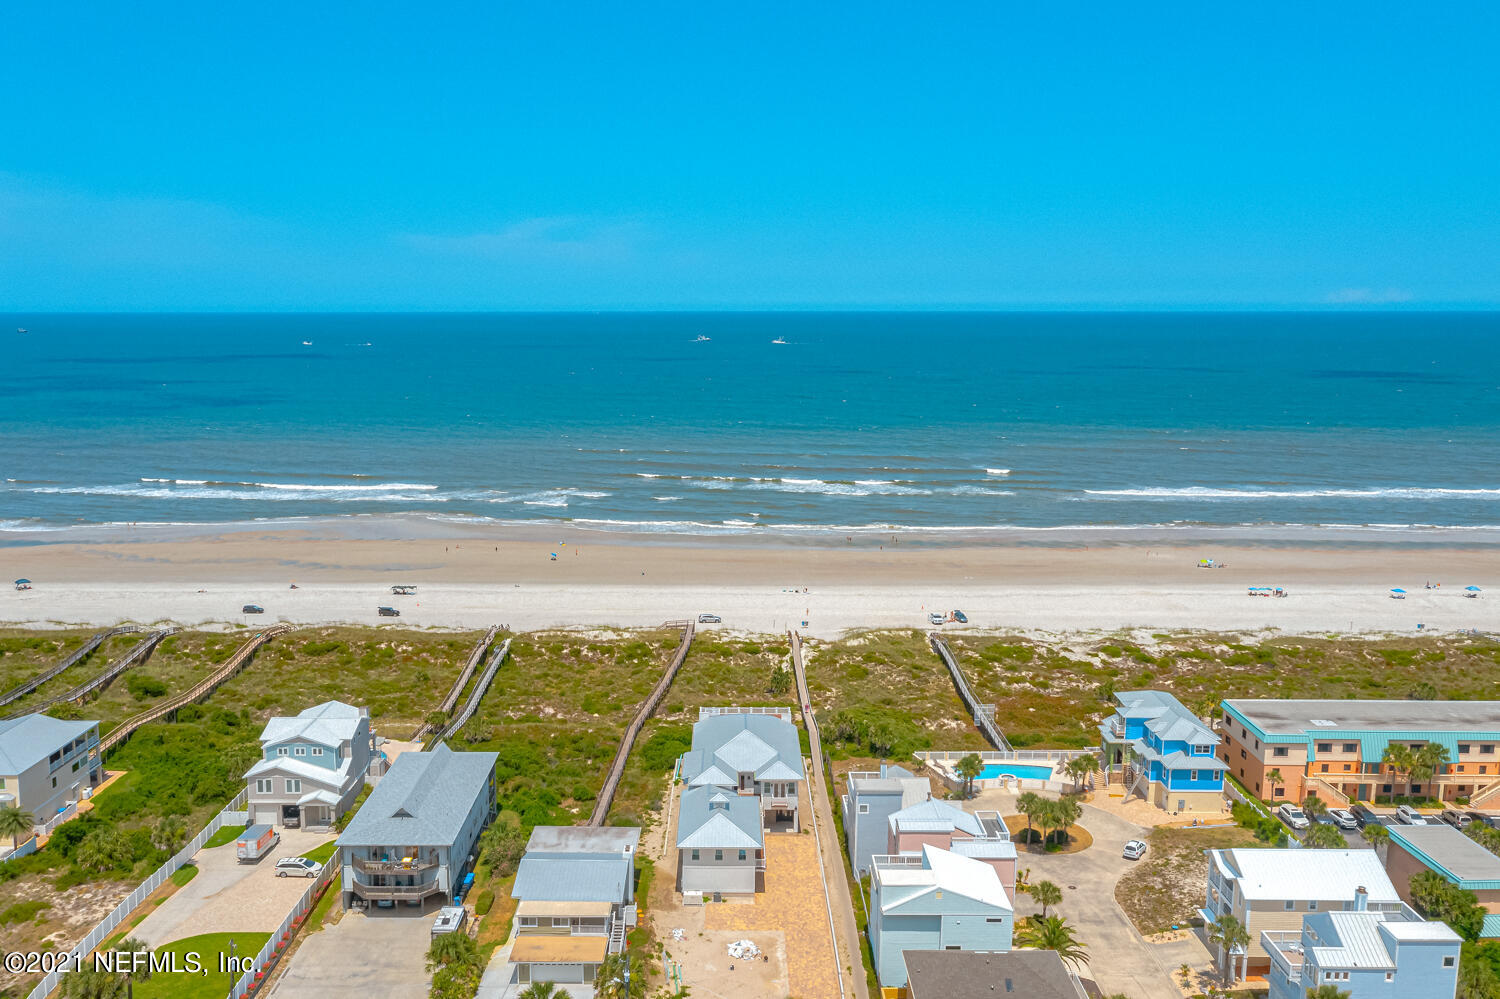 6060 A1A, ST AUGUSTINE, FLORIDA 32080, 7 Bedrooms Bedrooms, ,5 BathroomsBathrooms,Residential,For sale,A1A,1116067